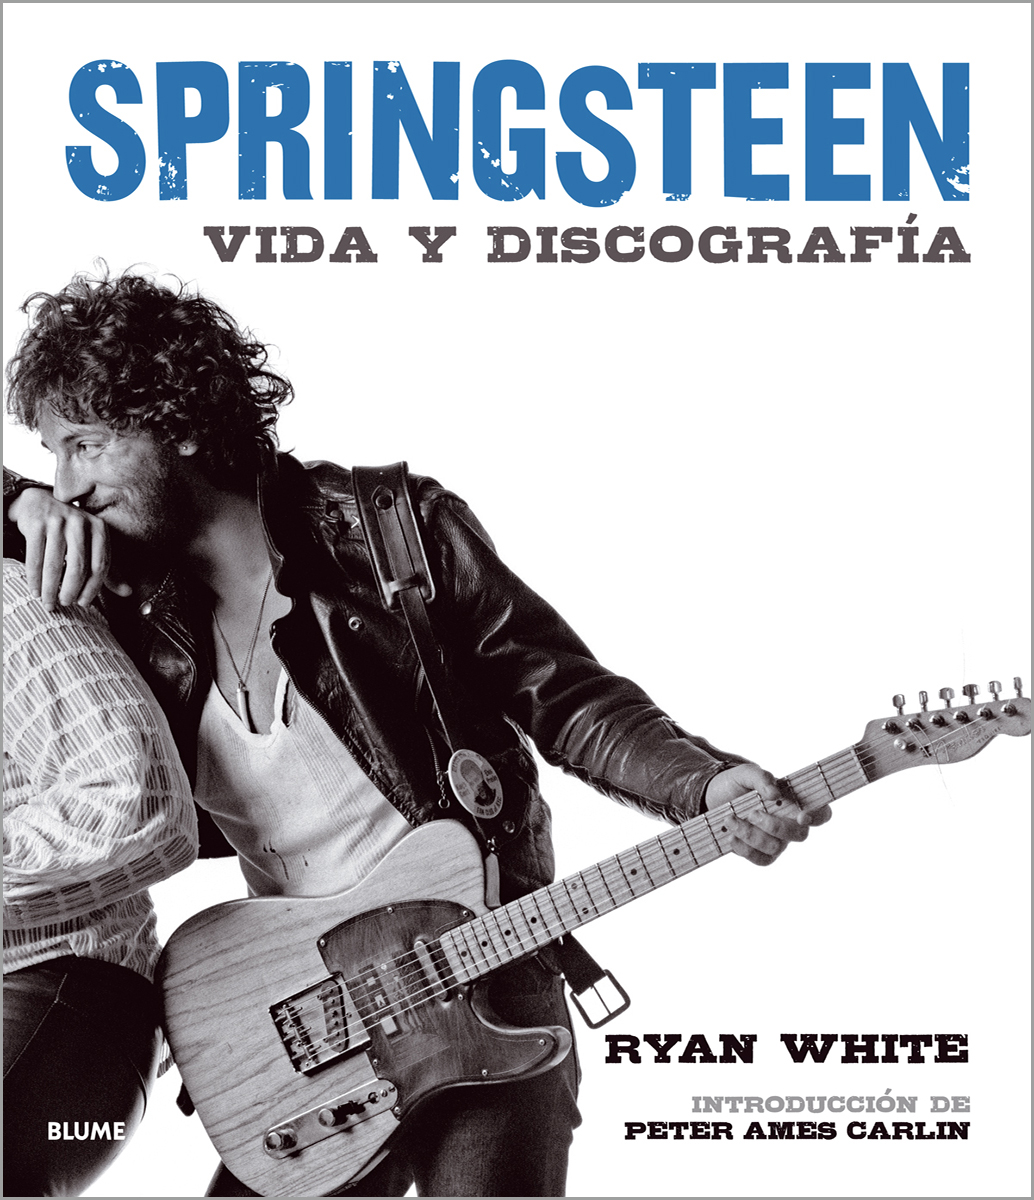 Bruce Springsteen - White Ryan